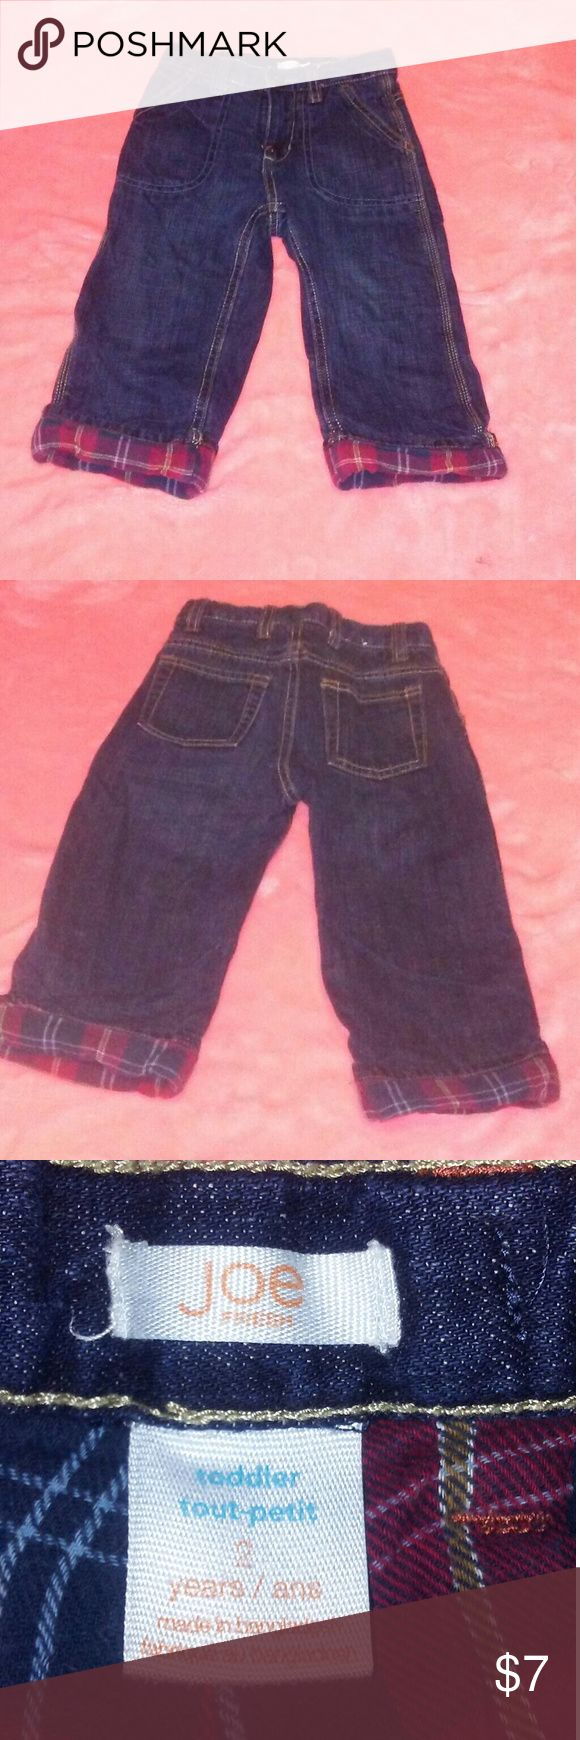 Joe Fresh Blue Jeans Size 2t Joe Fresh Dark Wash Blue Jeans with Red Plaid fabric pn the bottoms of the pant legs Joe Fresh Bottoms Jeans